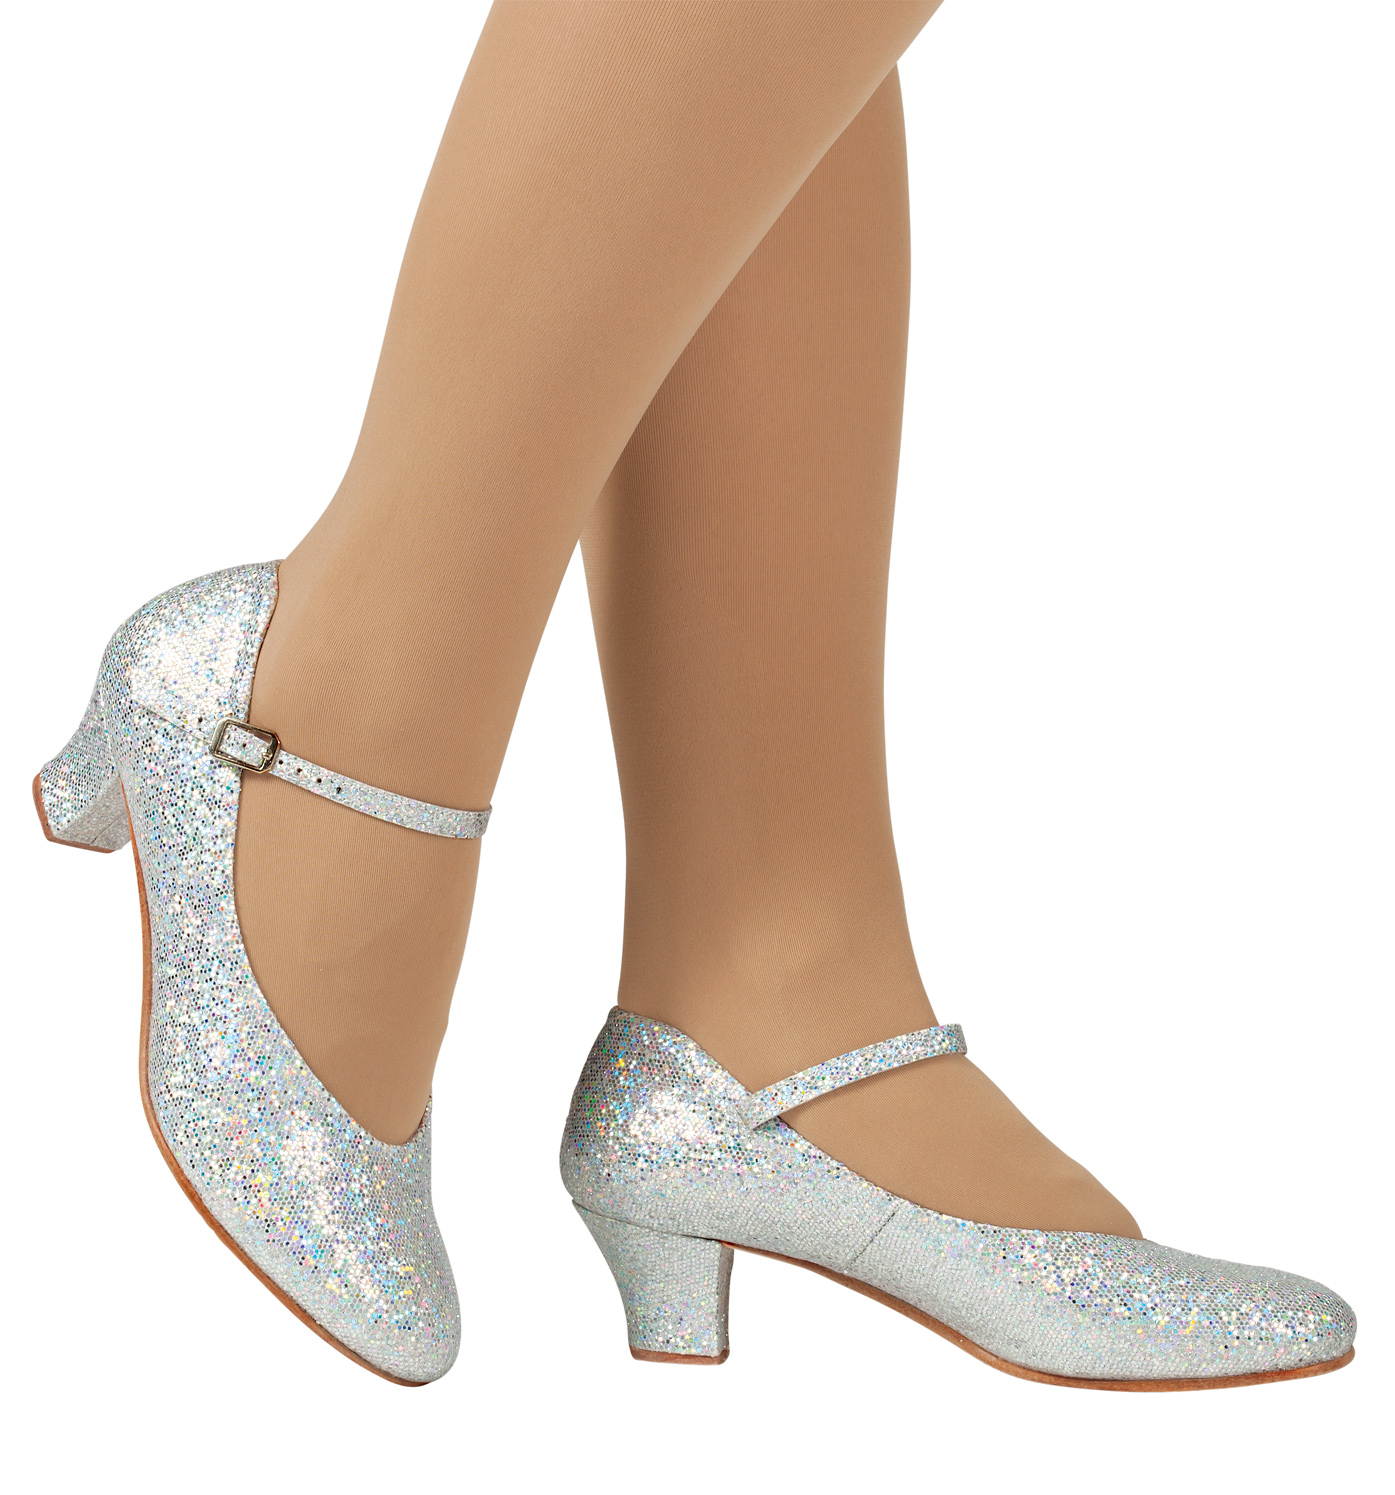 starlite 1 5 glitter character shoes   character shoes